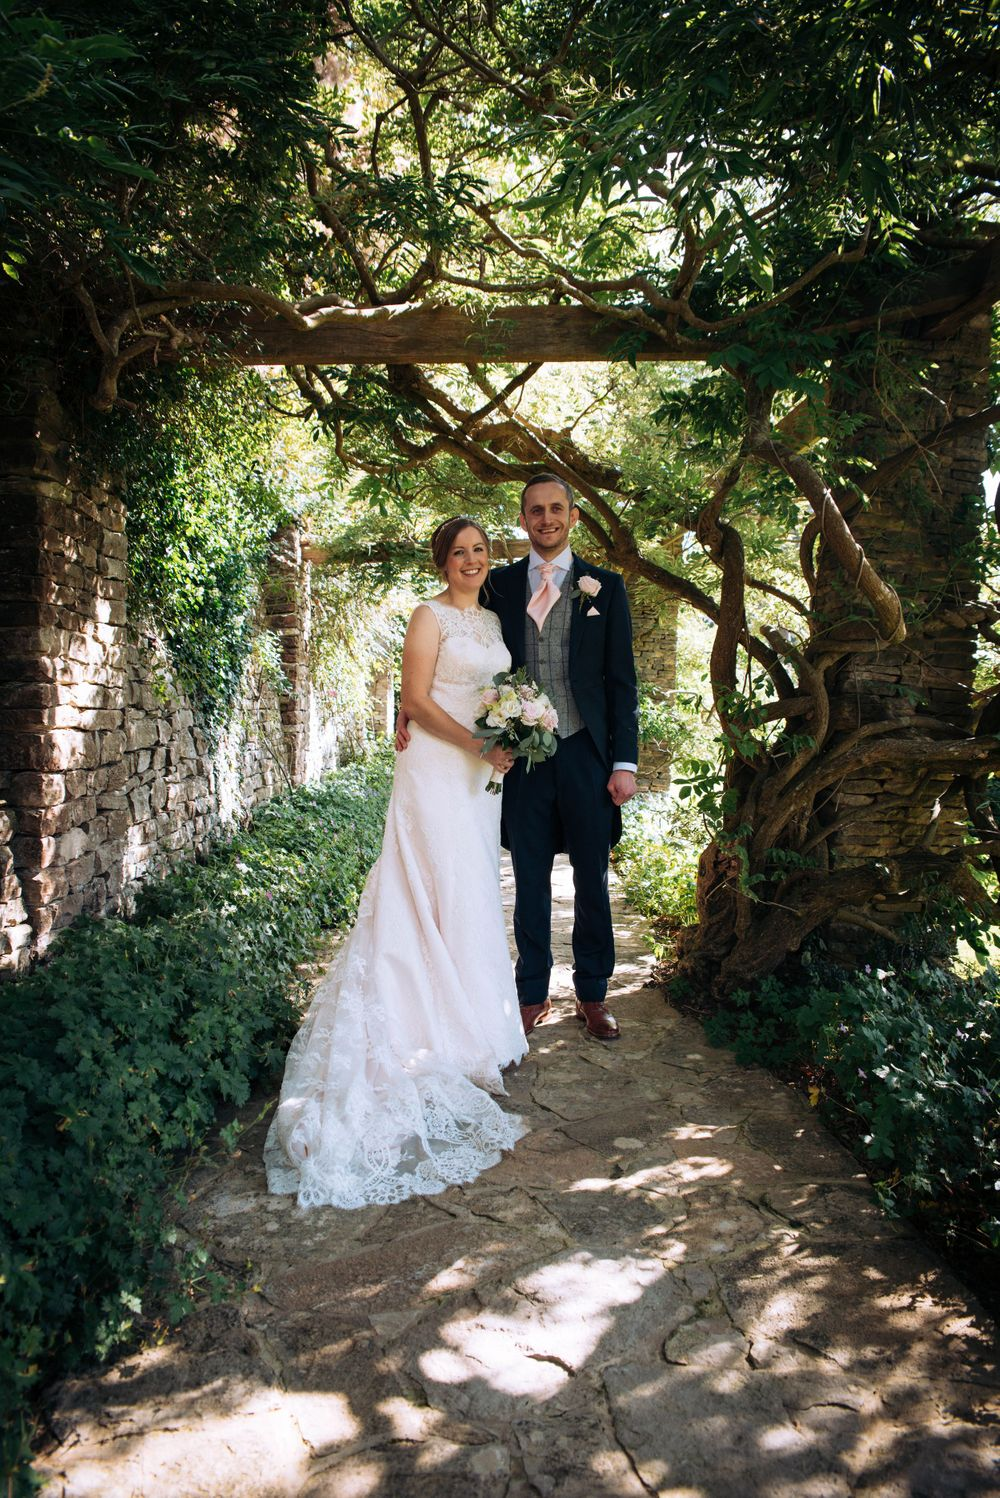 Zara Davis Wedding Photography Near Stroud, Gloucestershire, Cotswolds Glenfall House greenery and bride and groom